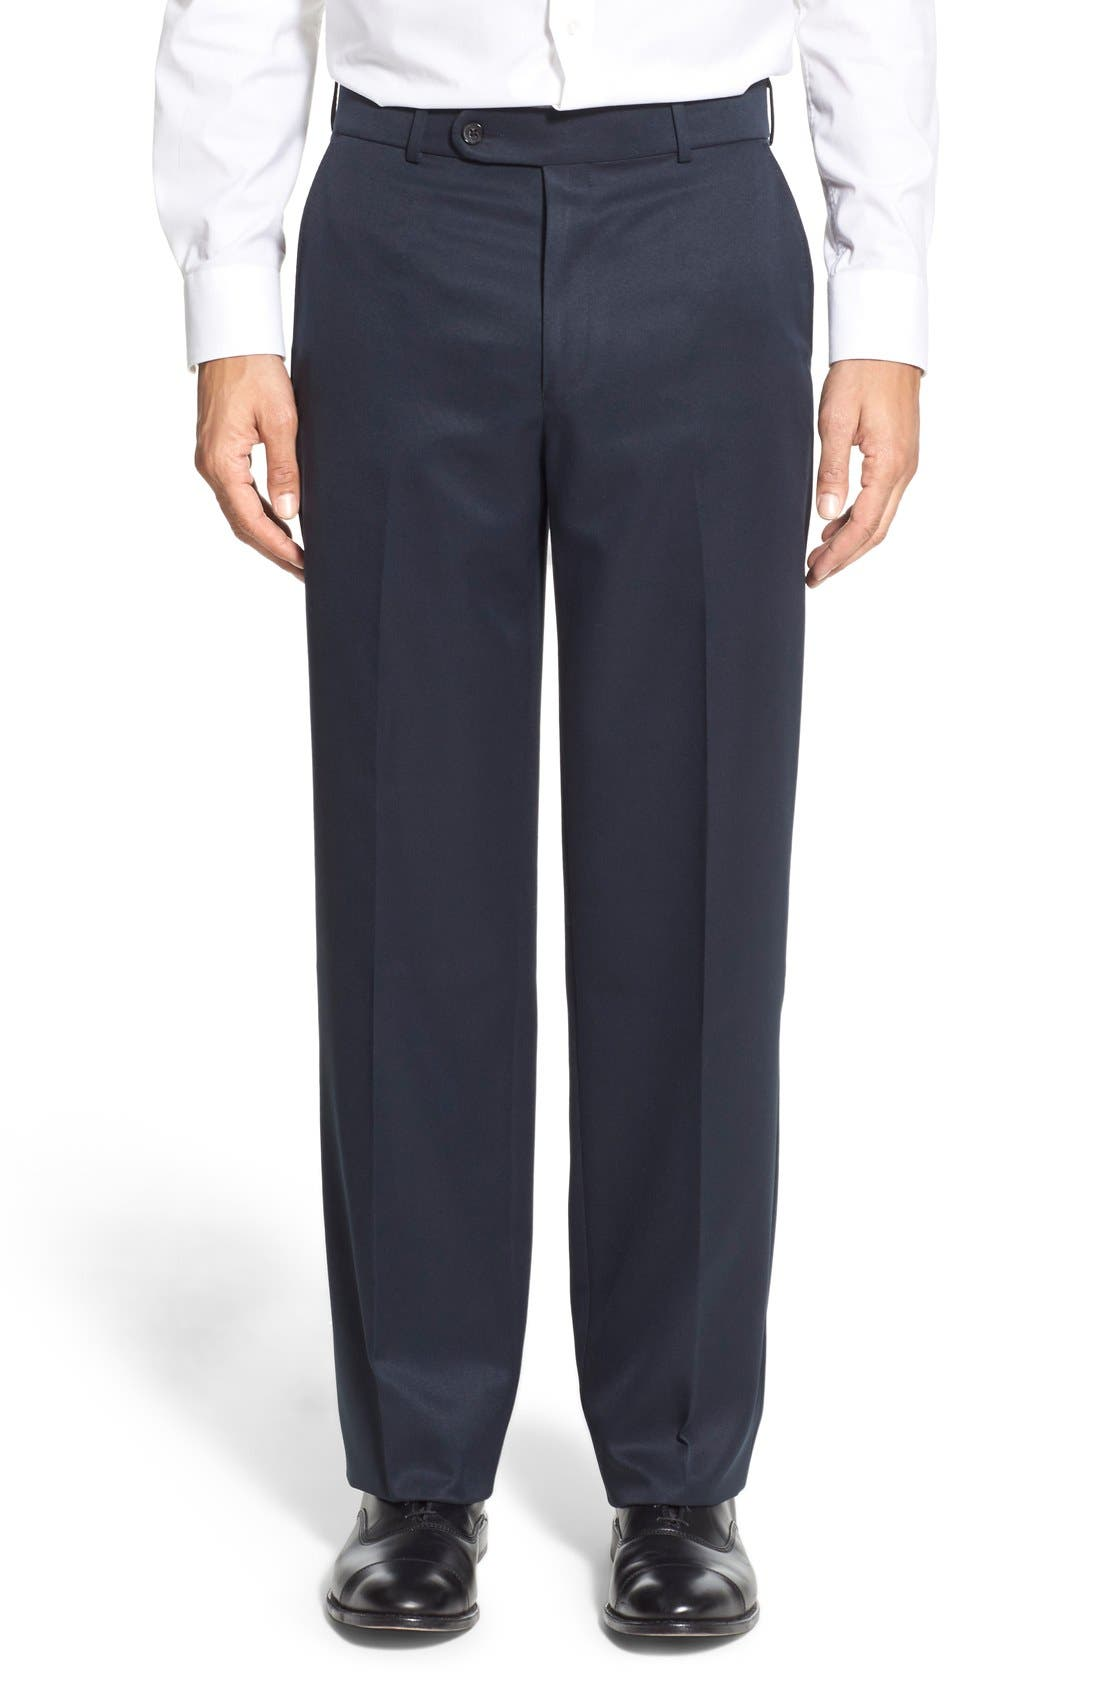 Alternate Image 1 Selected - Ballin Regular Fit Flat Front Trousers